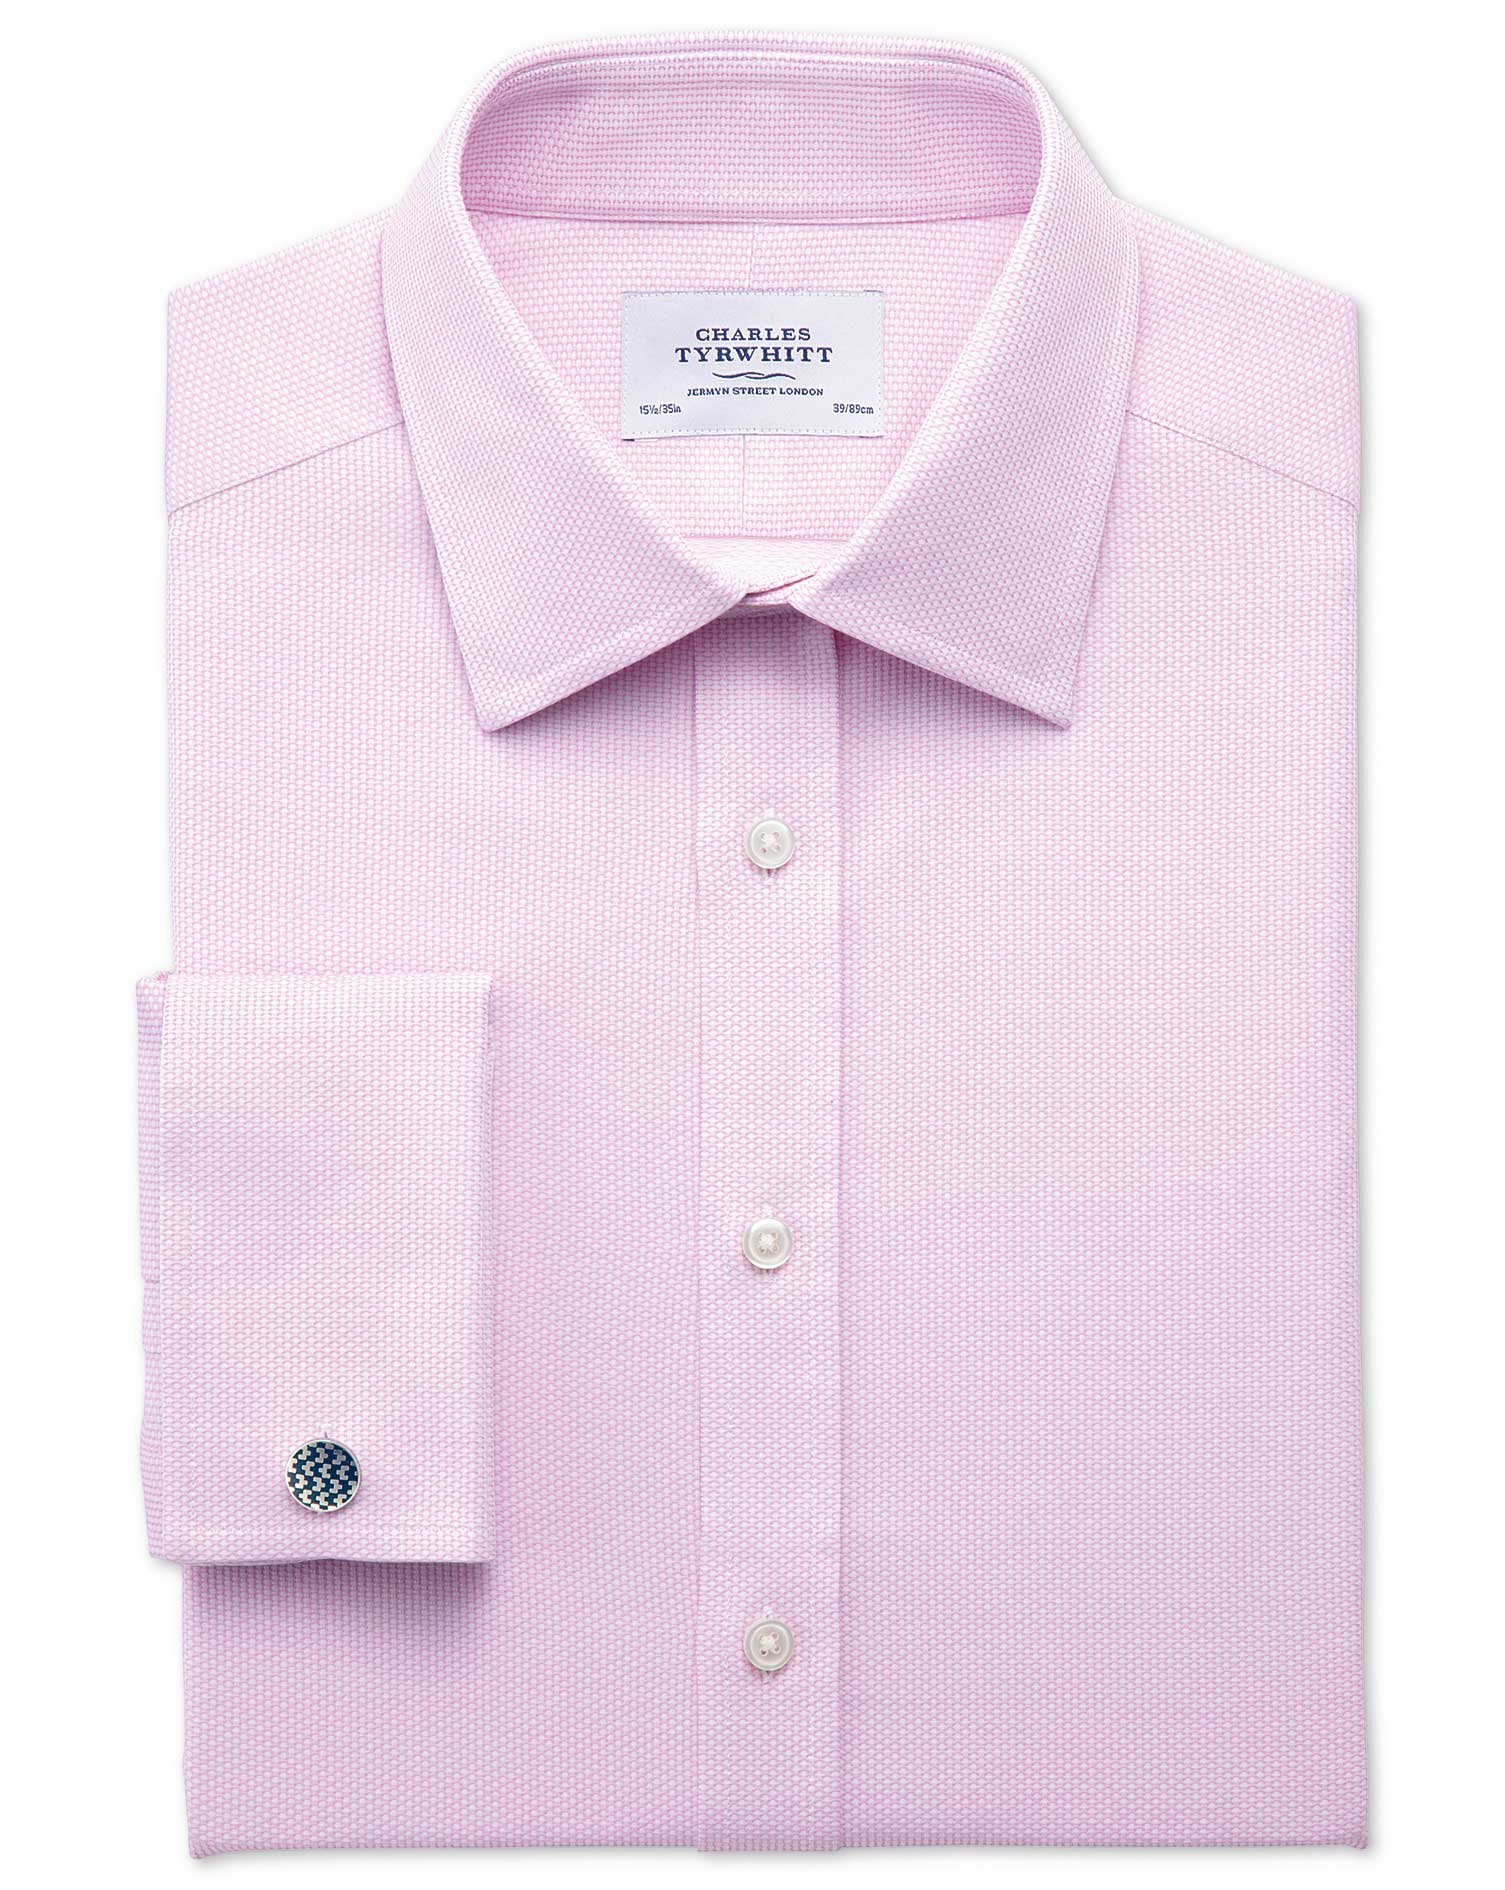 Extra Slim Fit Egyptian Cotton Diamond Texture Pink Formal Shirt Single Cuff Size 14.5/32 by Charles